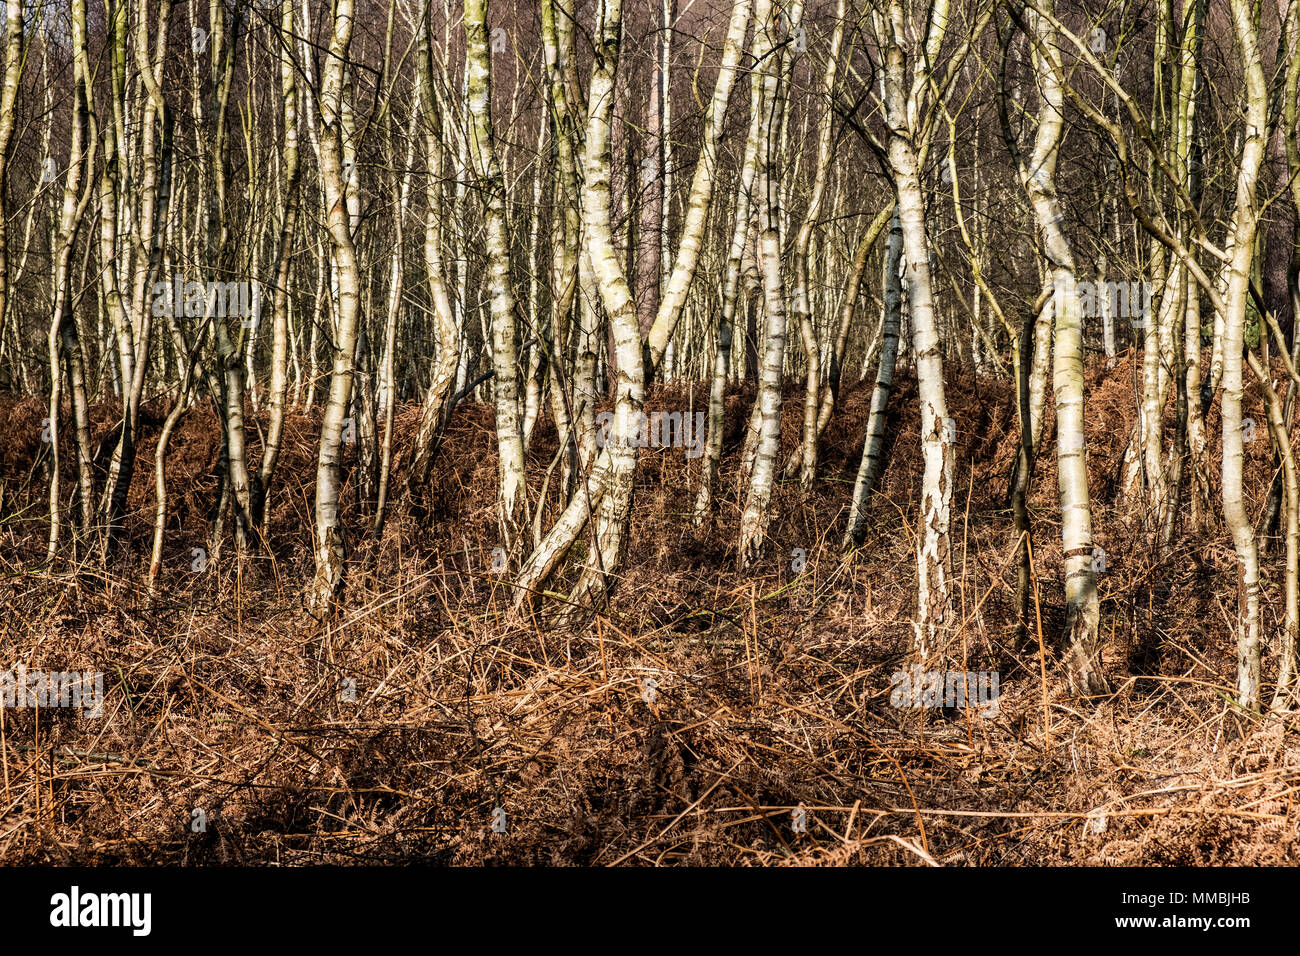 Thicket of birch trees in winter, with pale twisted and straight stems. - Stock Image